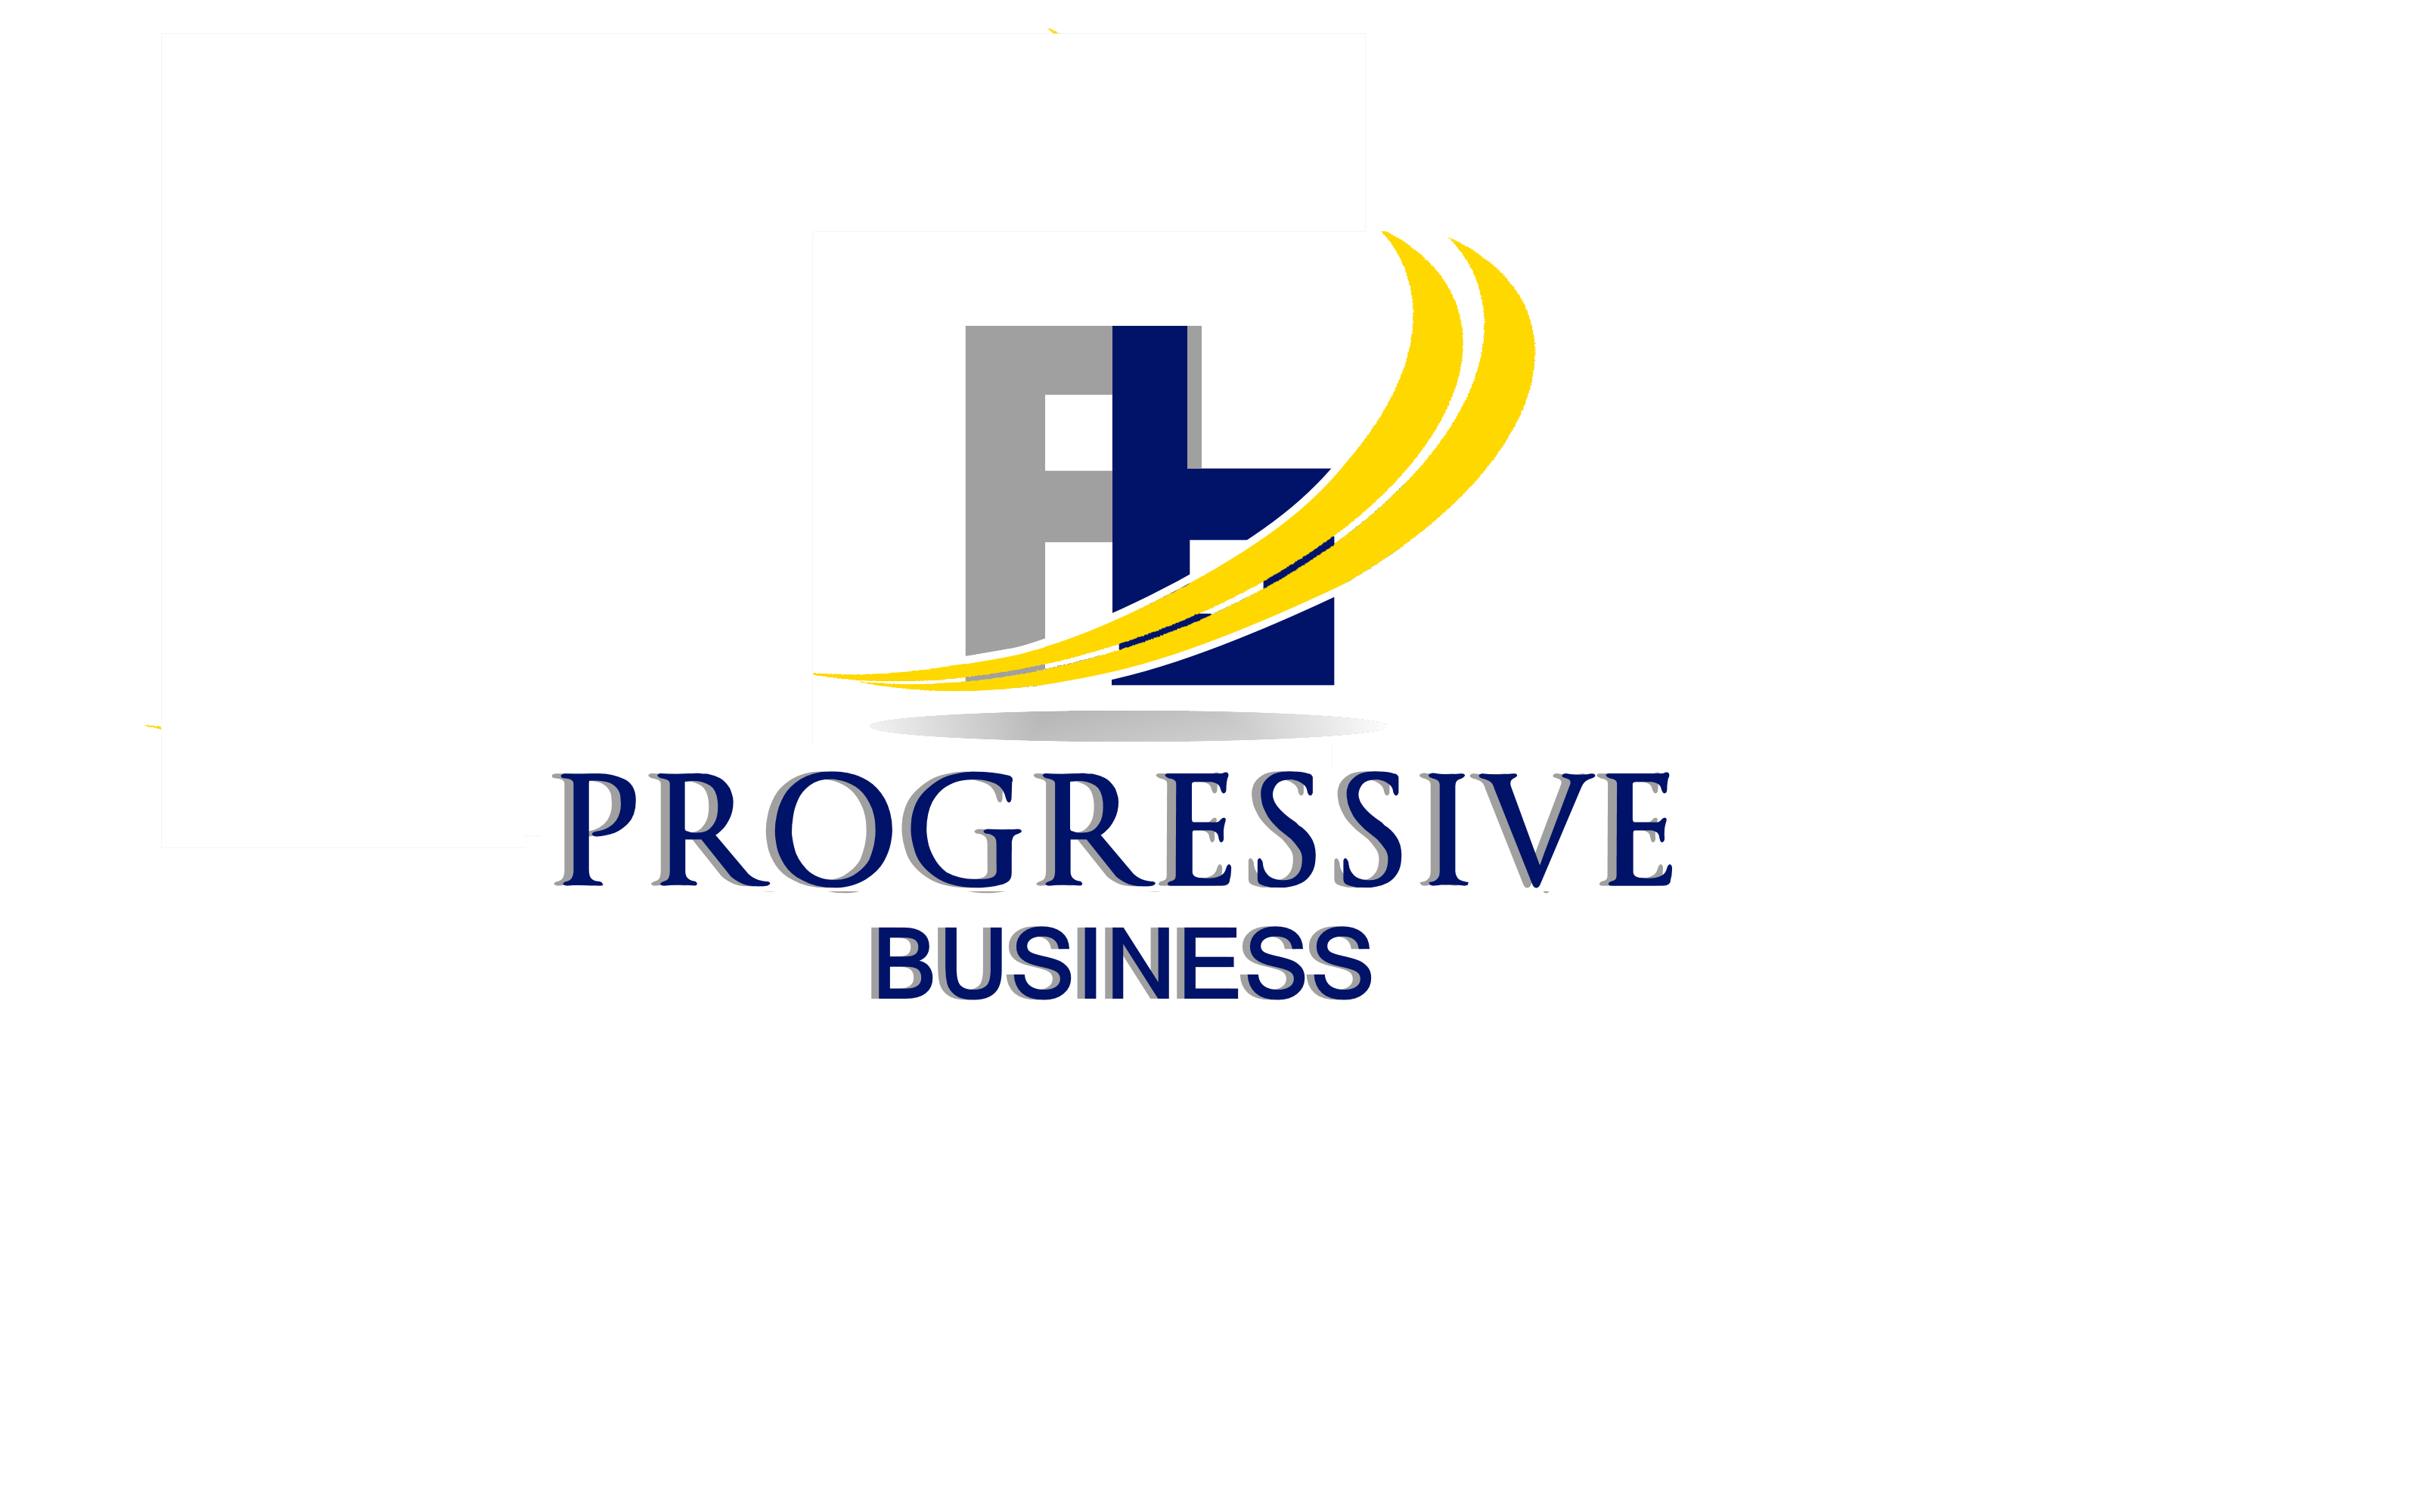 Logo Design by Roberto Bassi - Entry No. 69 in the Logo Design Contest Captivating Logo Design for Progressive Business.